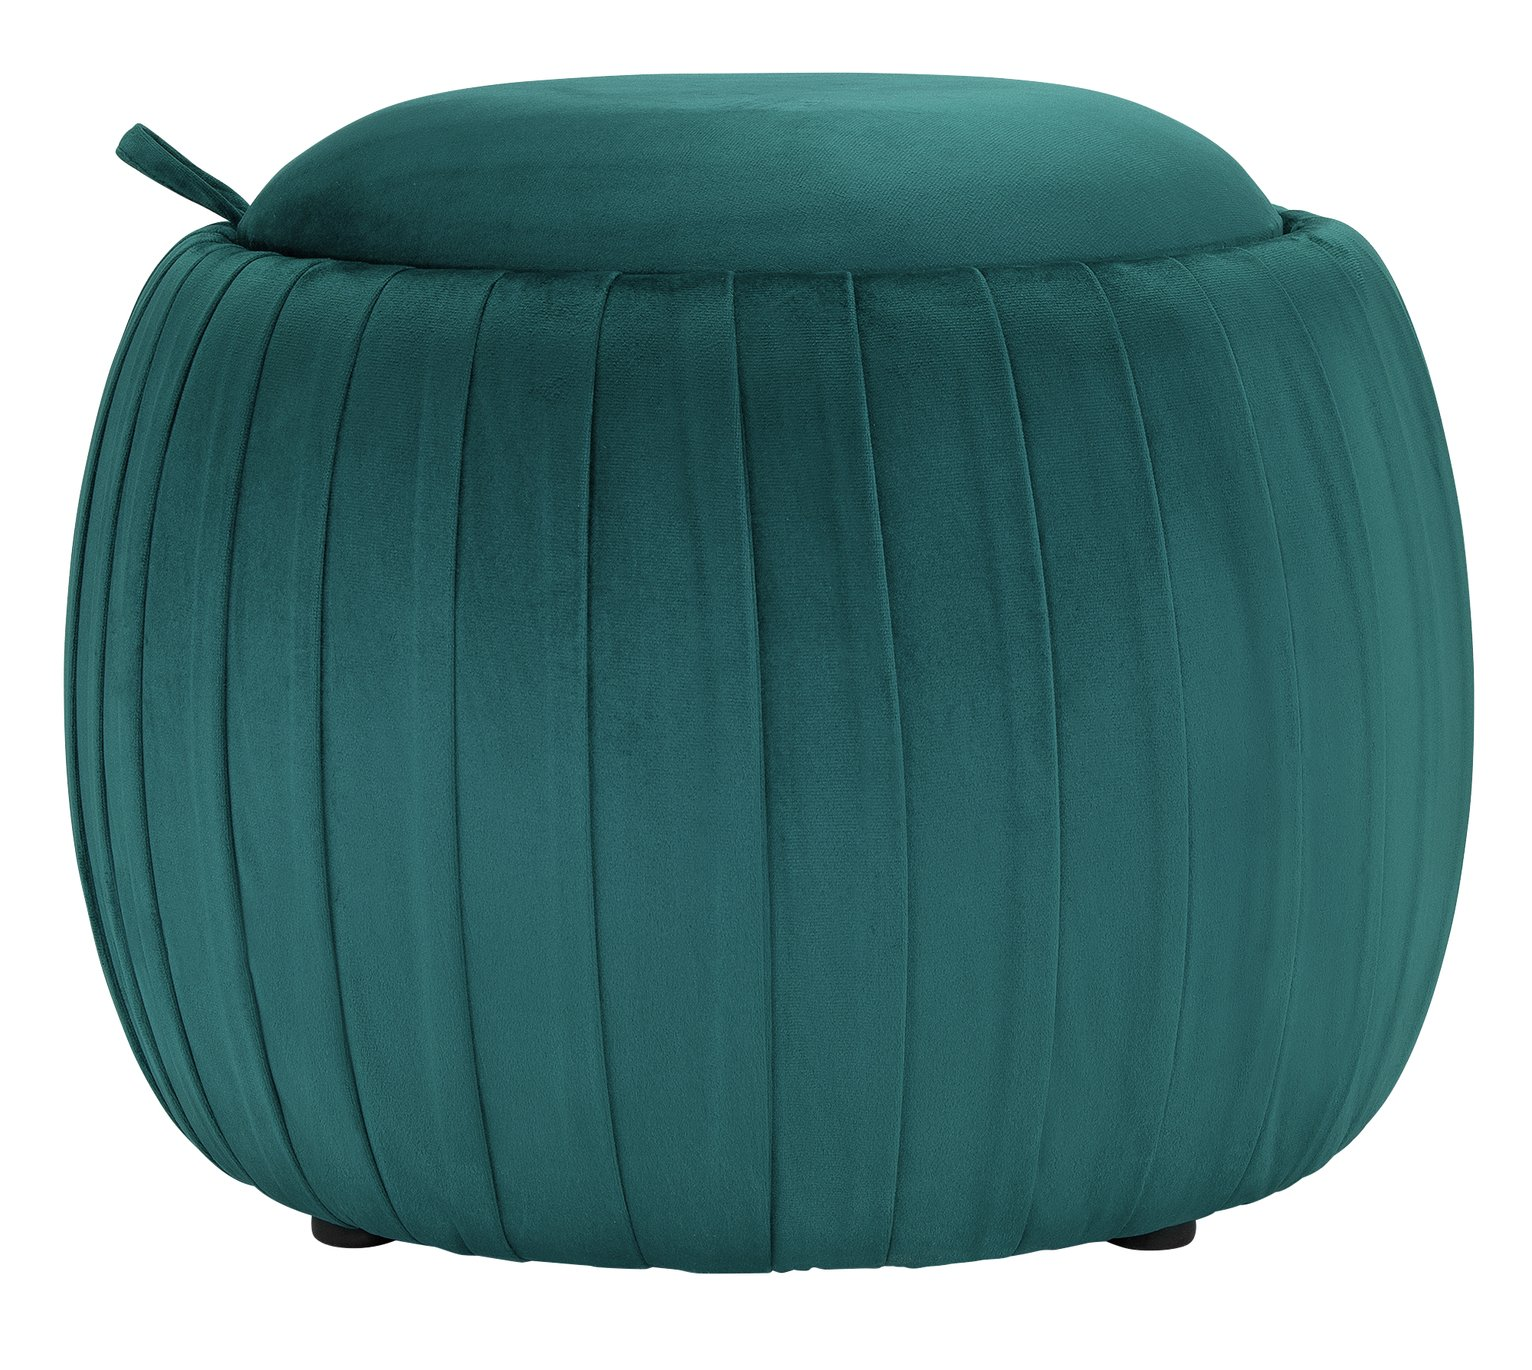 Argos Home Ellie Velvet Storage Footstool - Teal